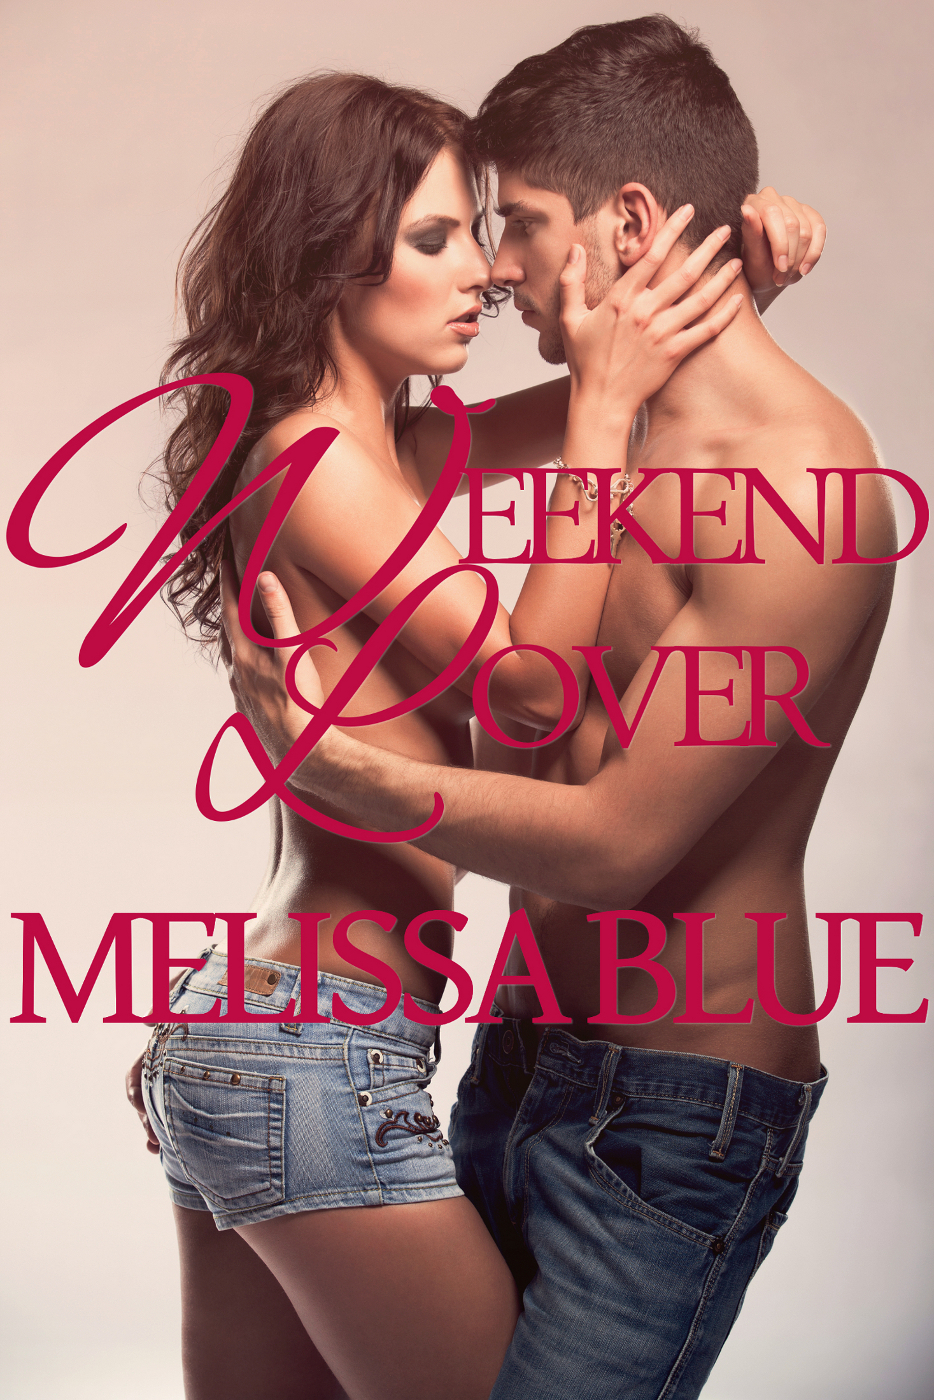 Weekend Lover By: Melissa Blue